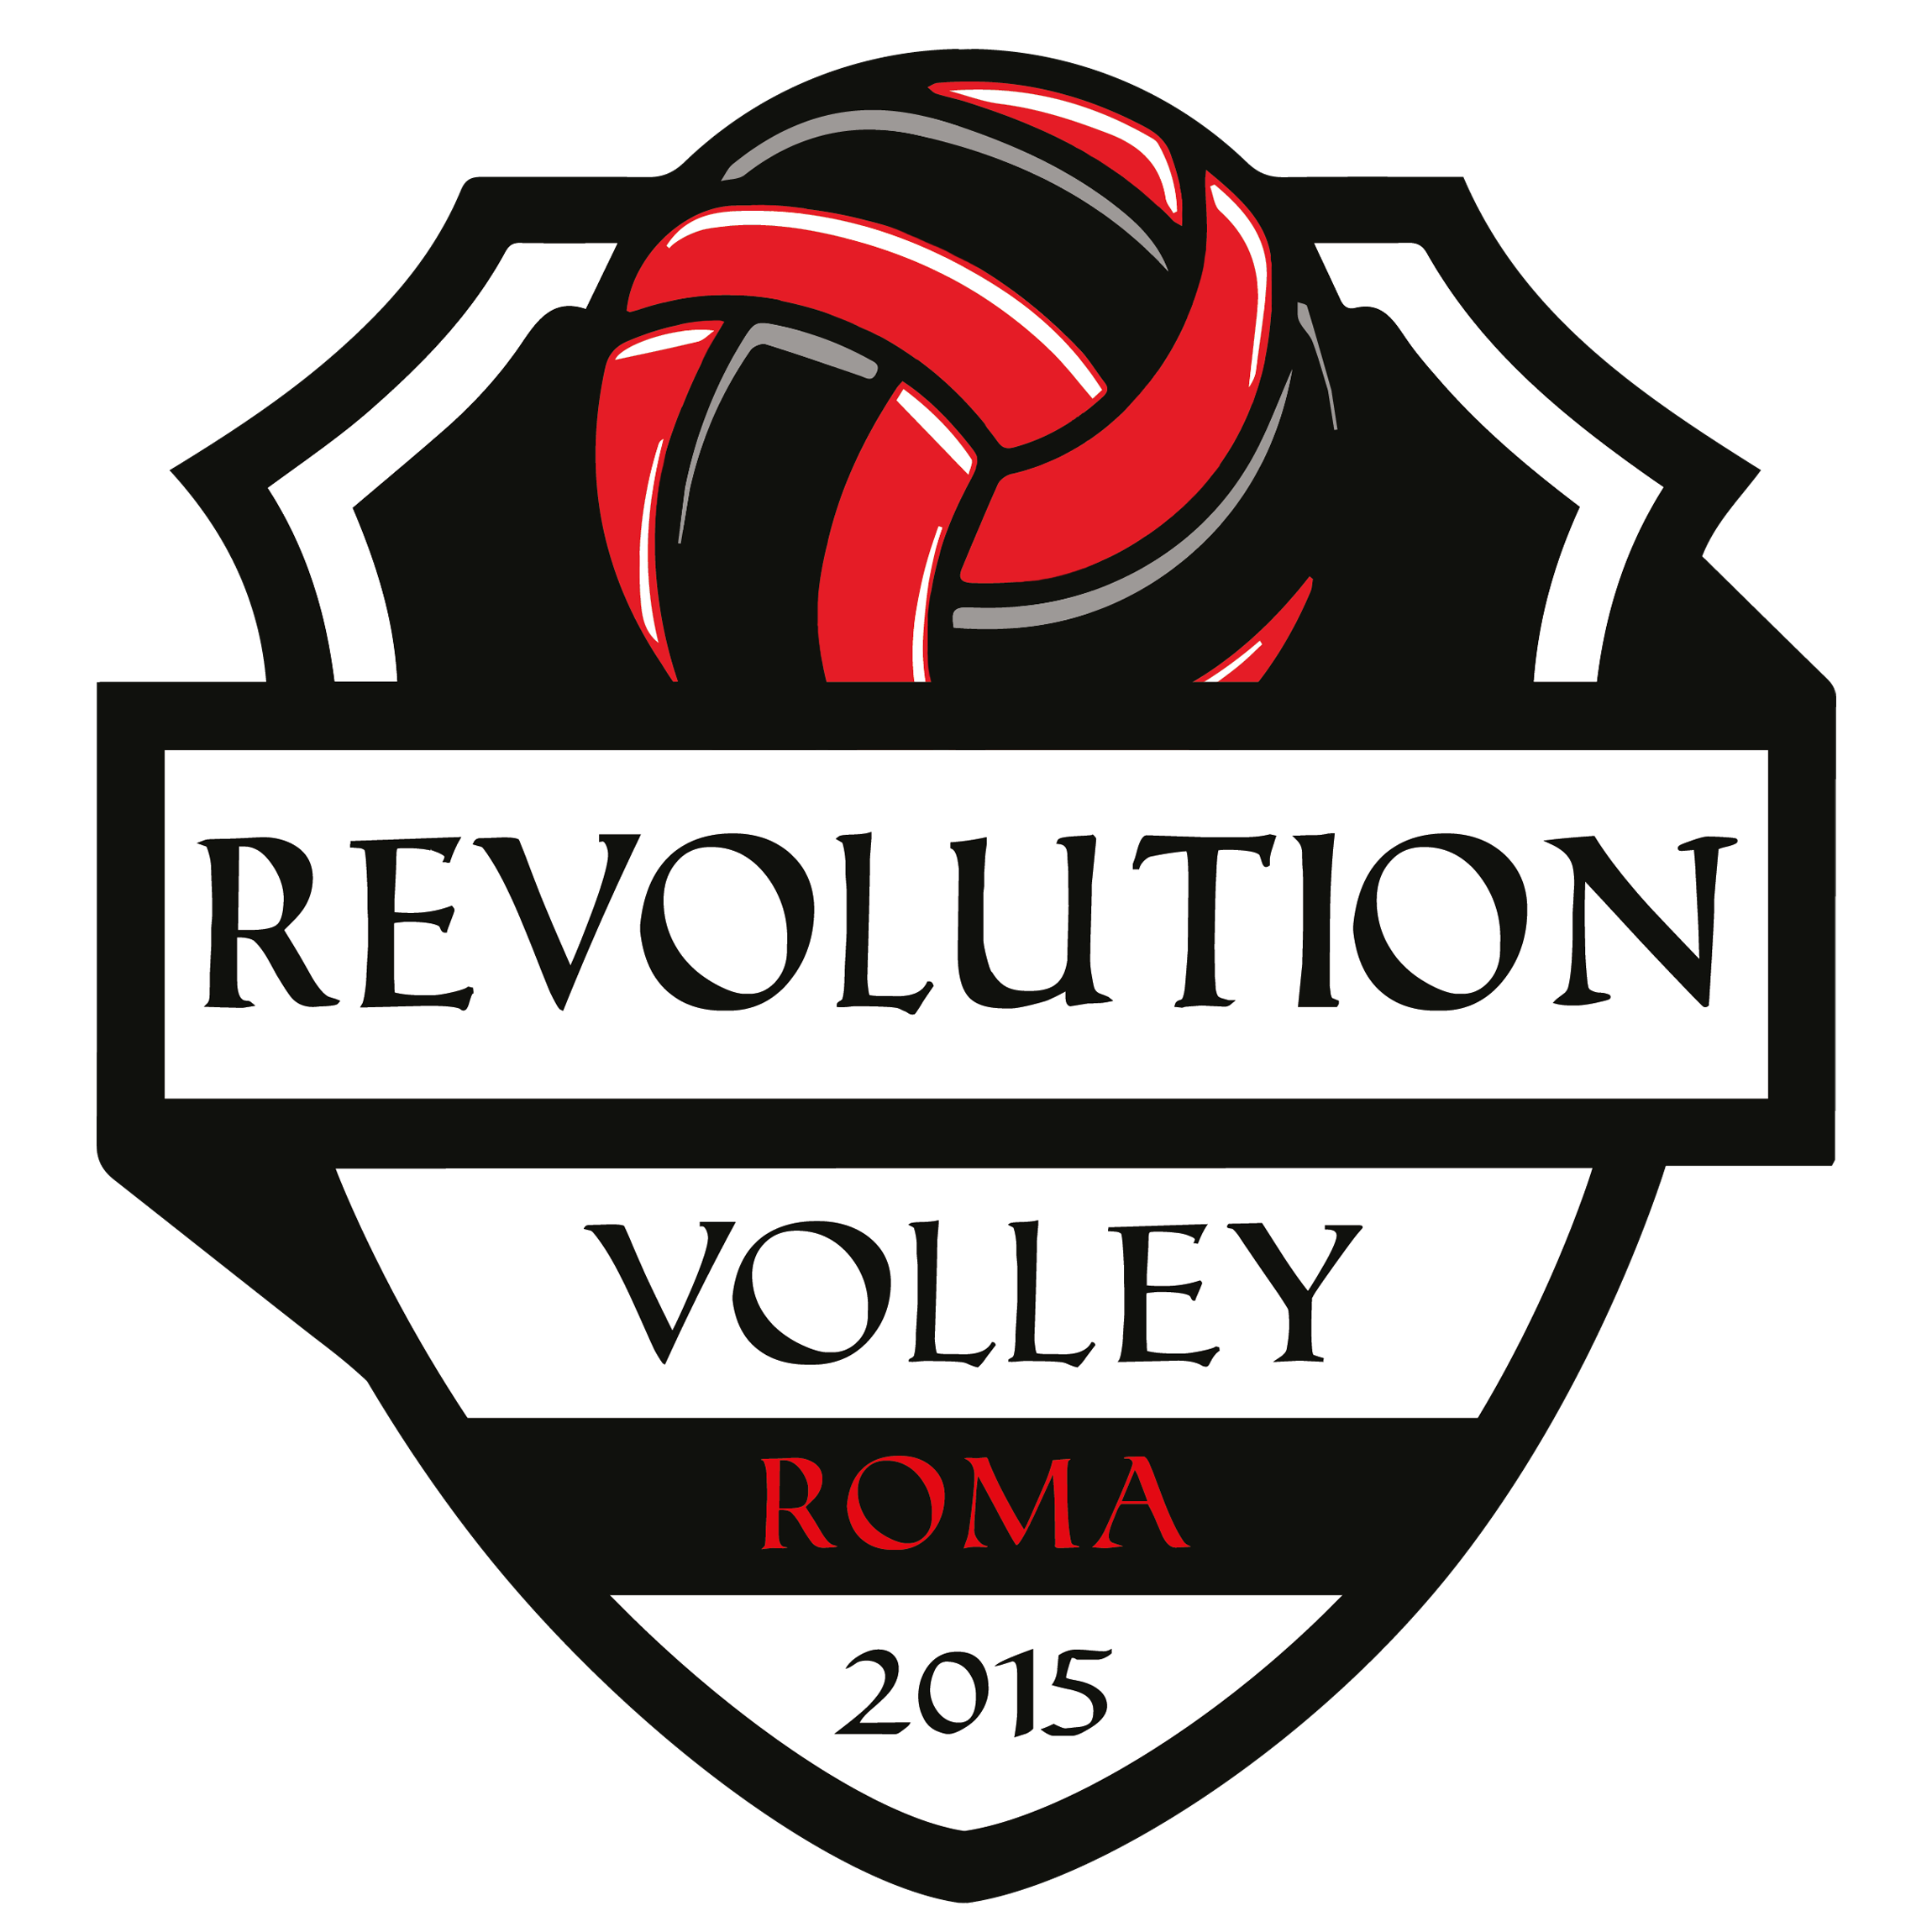 RevolutionVolley